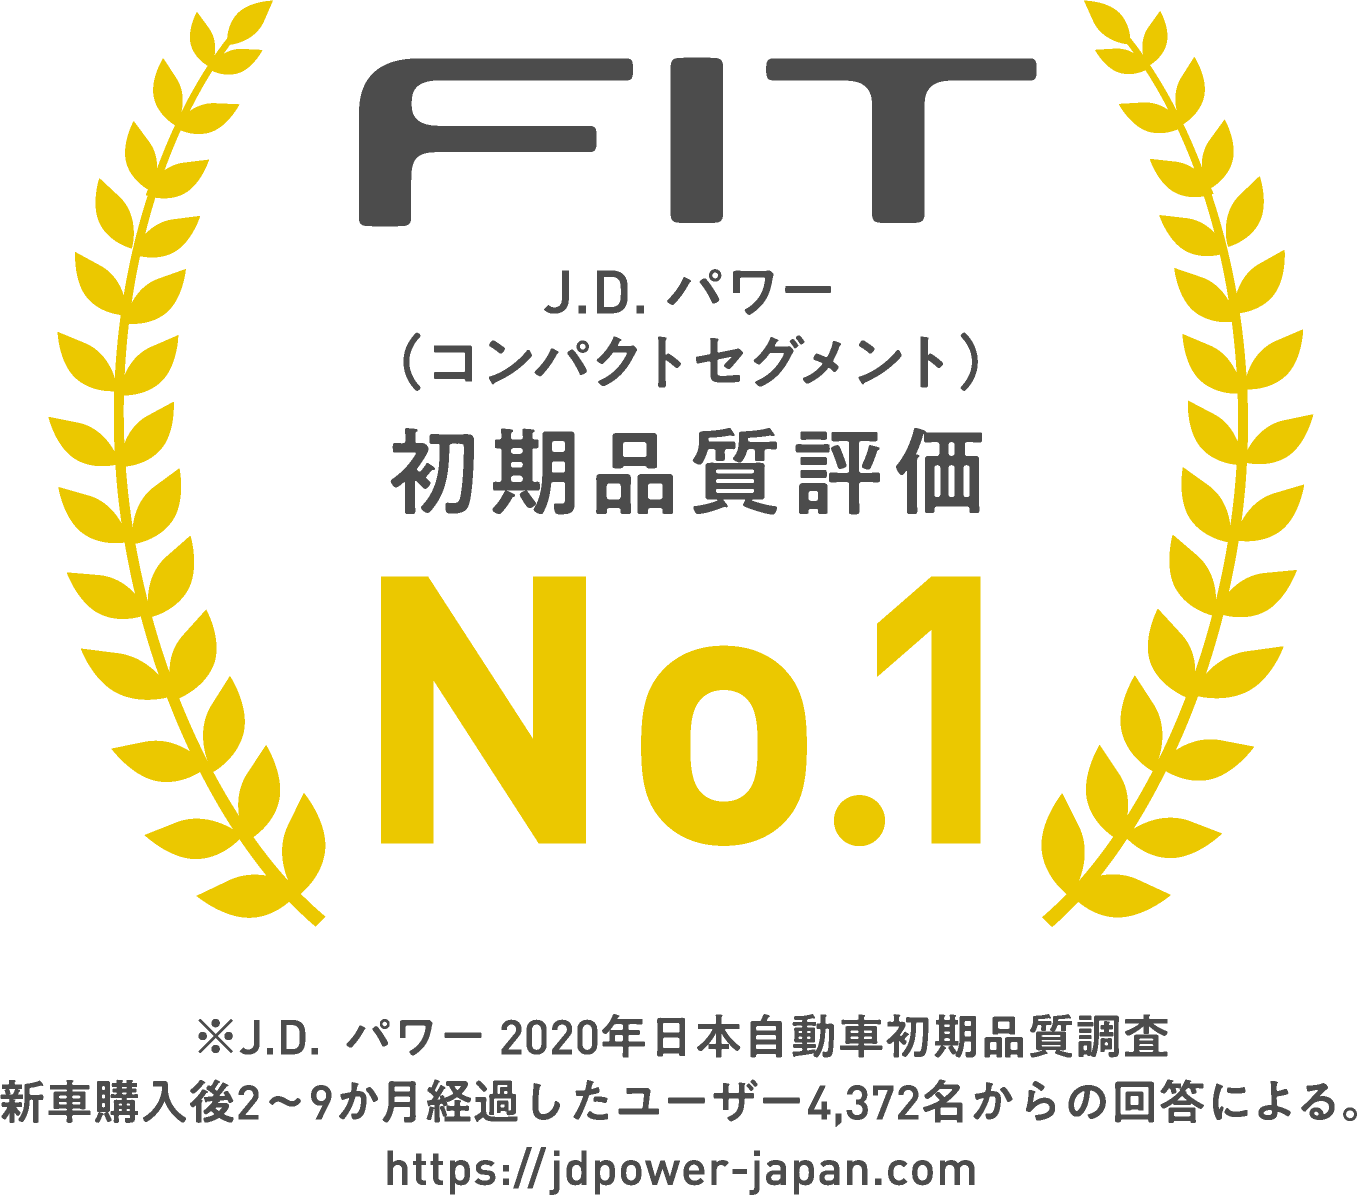 FIT J.D. パワー(コンパクトセグメント) 初期品質評価 No.1